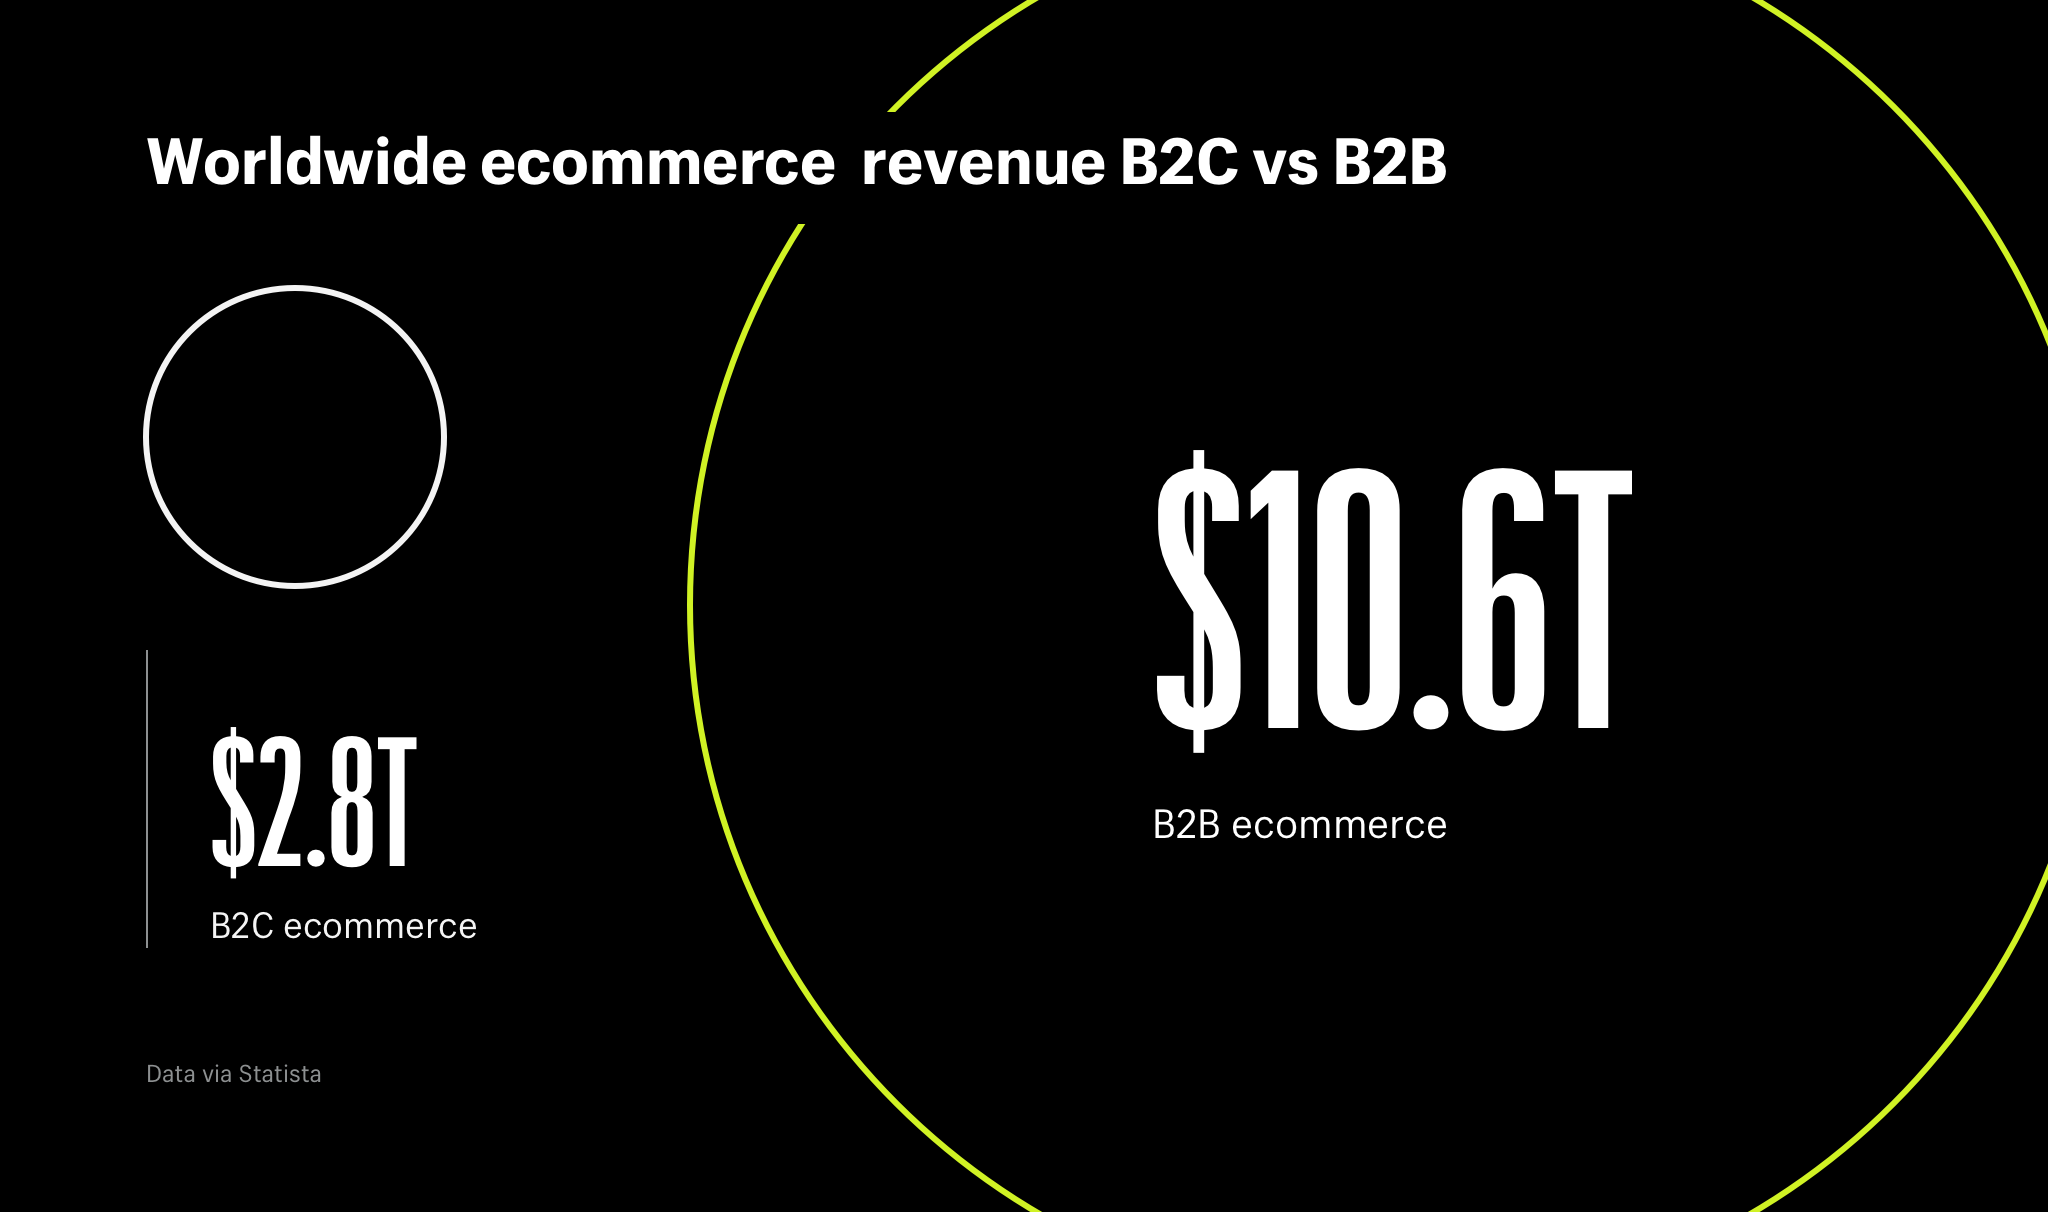 Worldwide ecommerce revenue B2C vs B2B